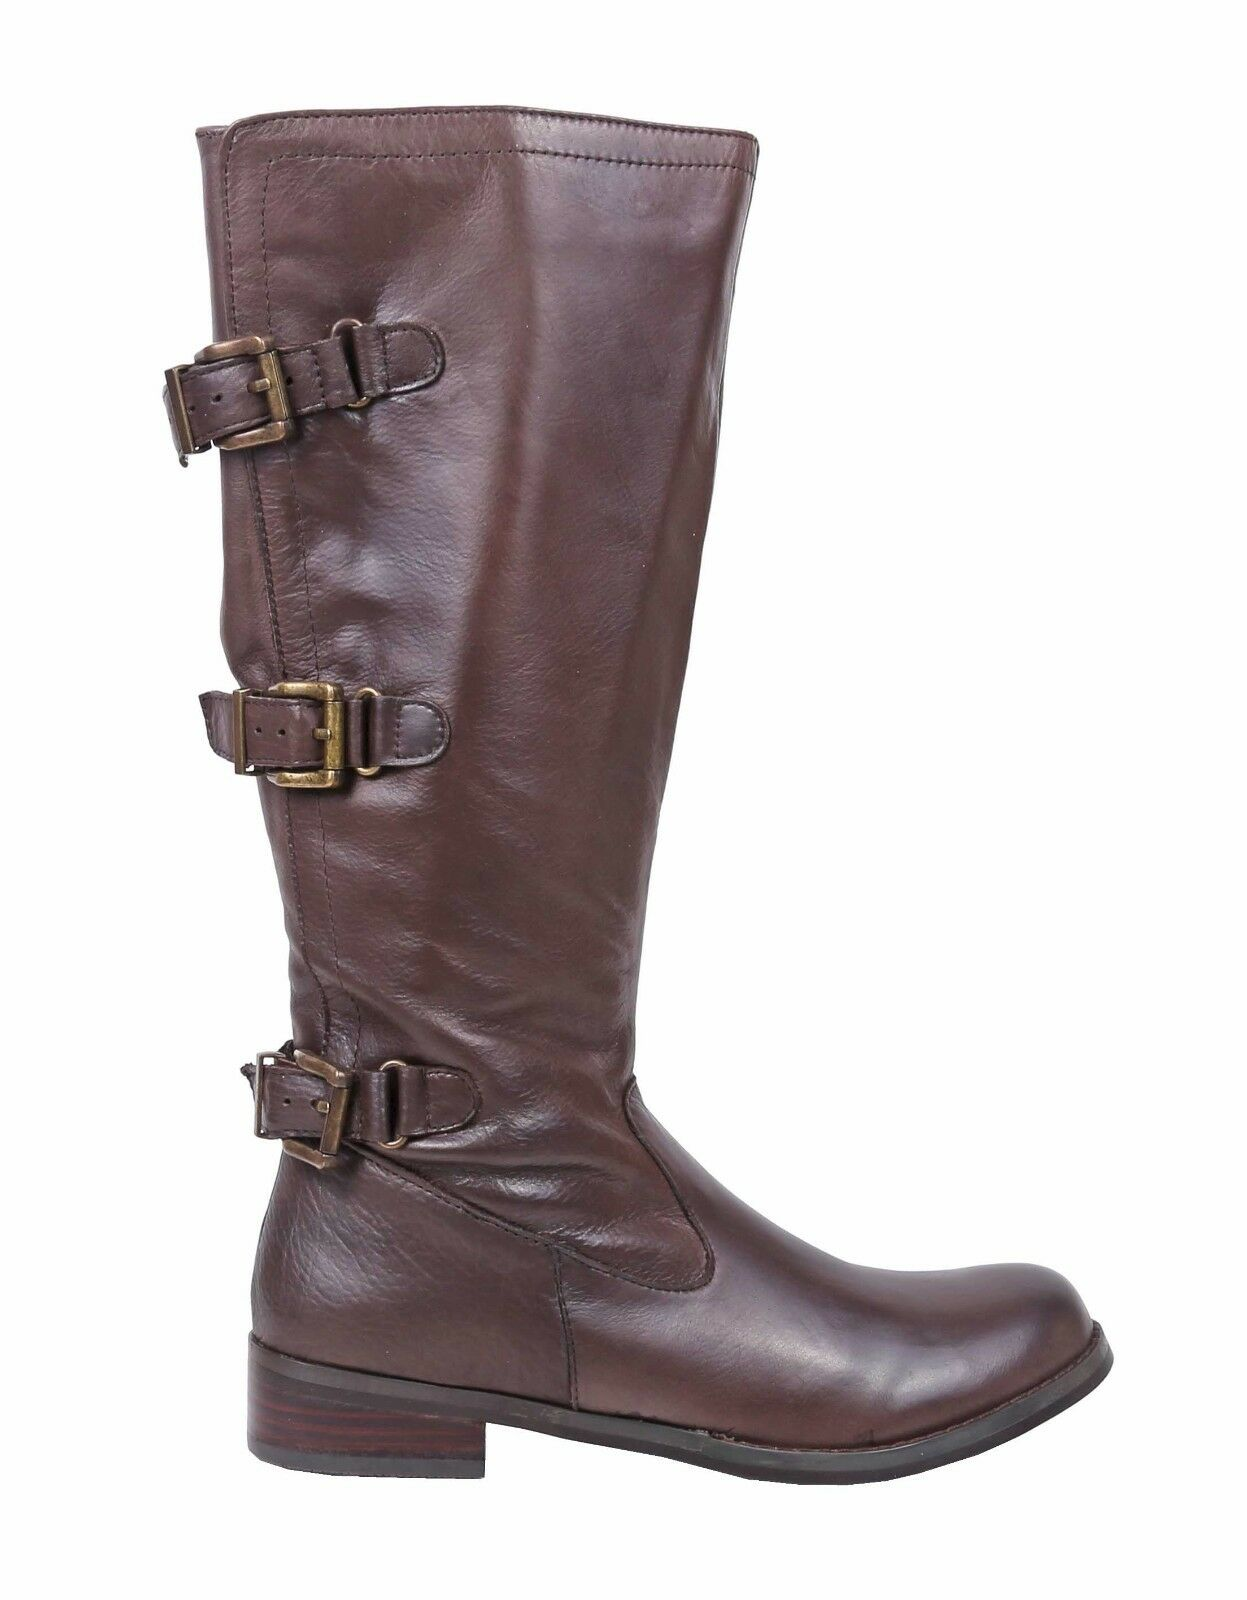 "Brown Color Leather Zipper Closure 1.5"" Heels Womens Knee High Boots Size"